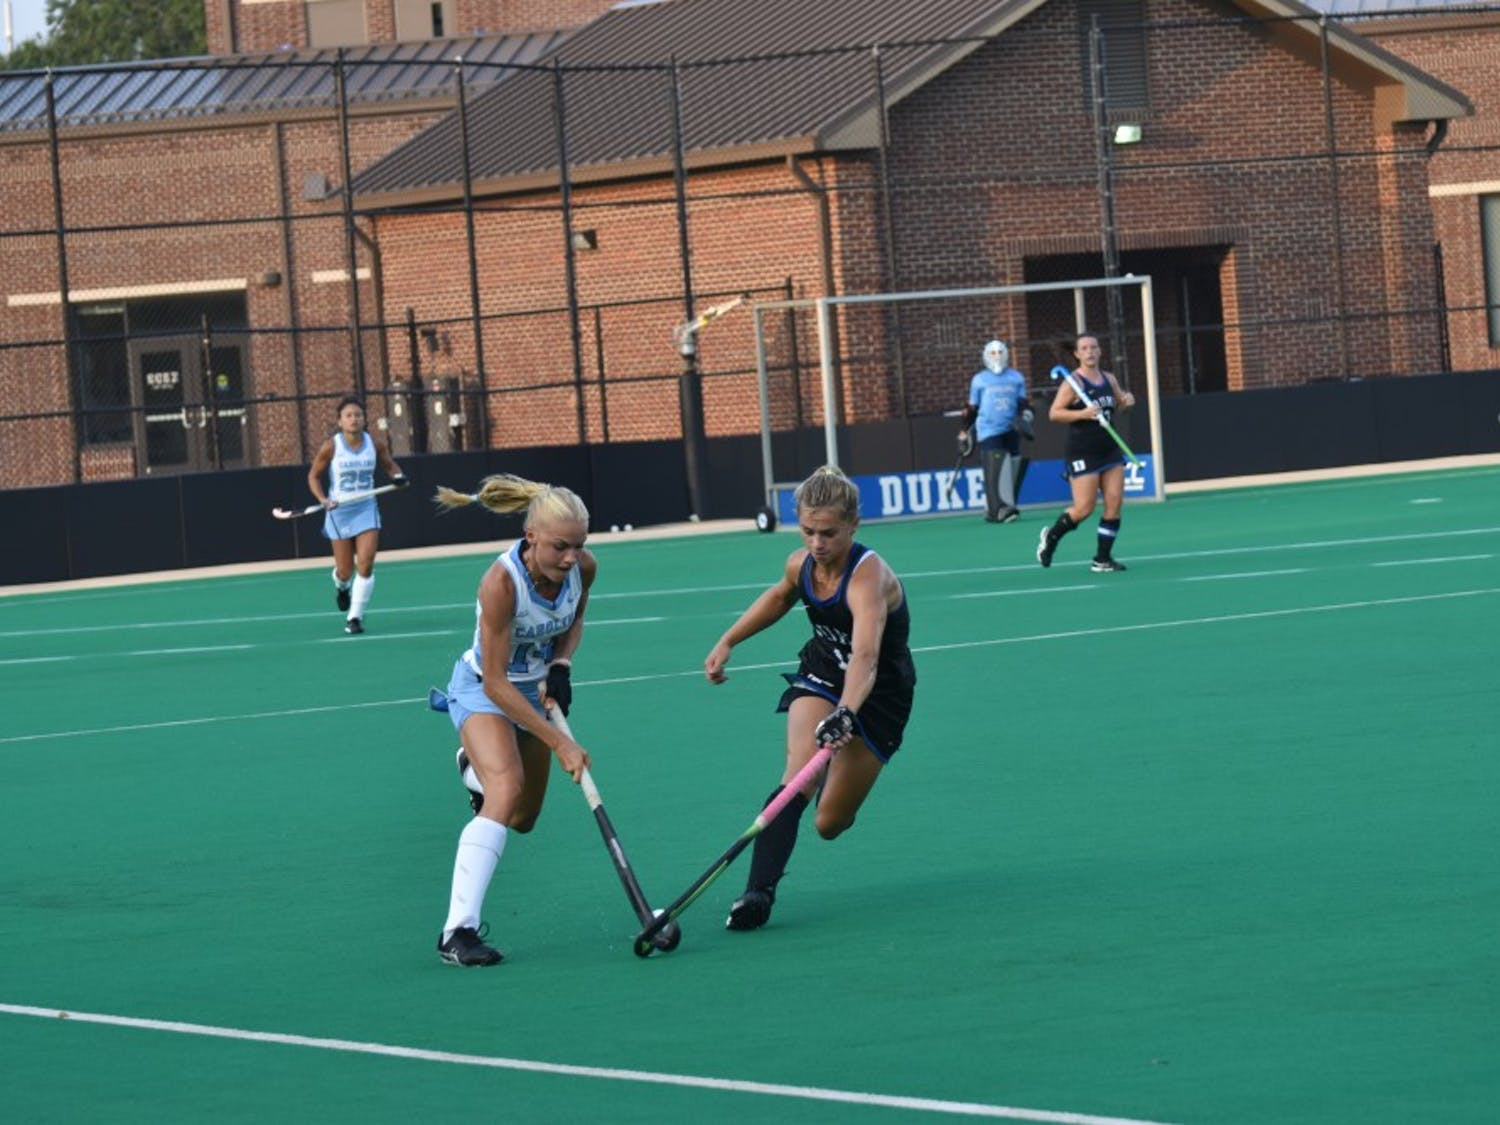 Midfielders Feline Guenther (14) and Margaux Paolino (12) compete for the ball on Friday, Sept. 21, 2018 on Williams Field at Jack Katz Stadium.